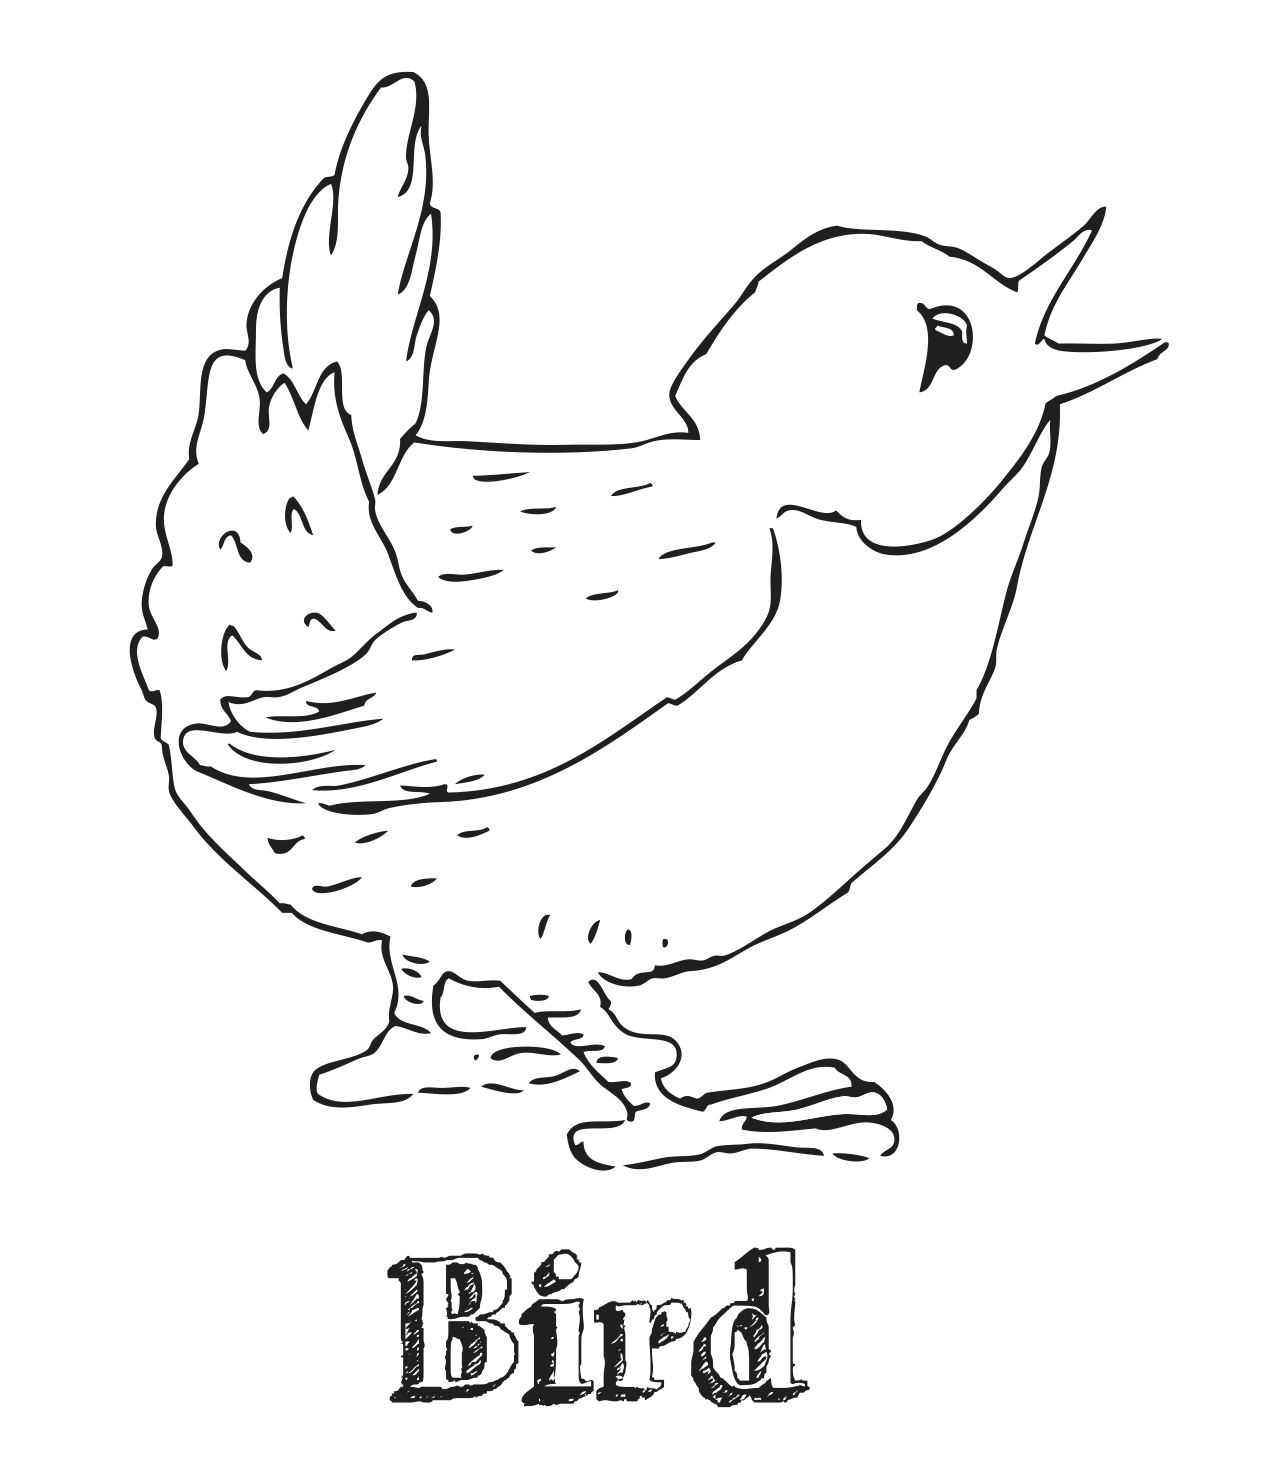 bird coloring pages dltk - Dltk Colouring Pages